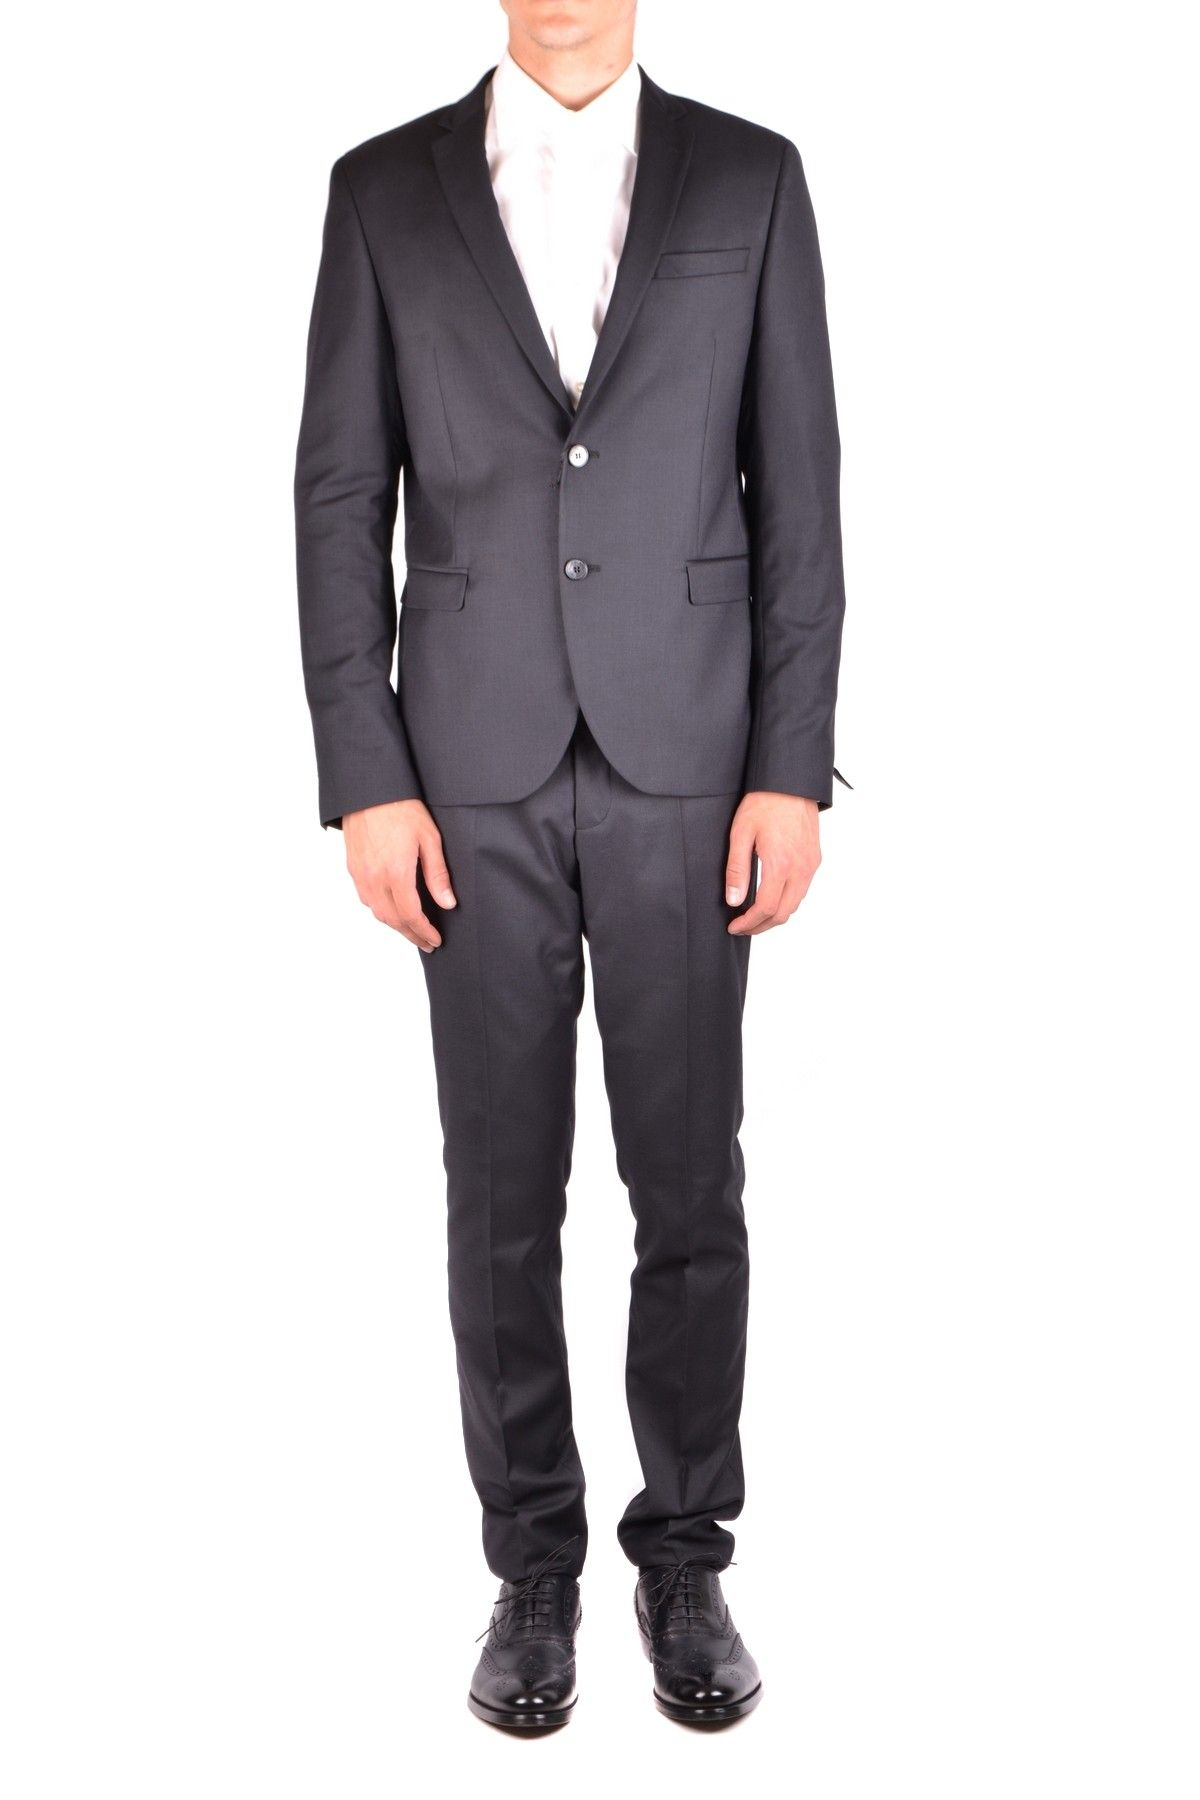 Manuel Ritz Men's Suit In Black